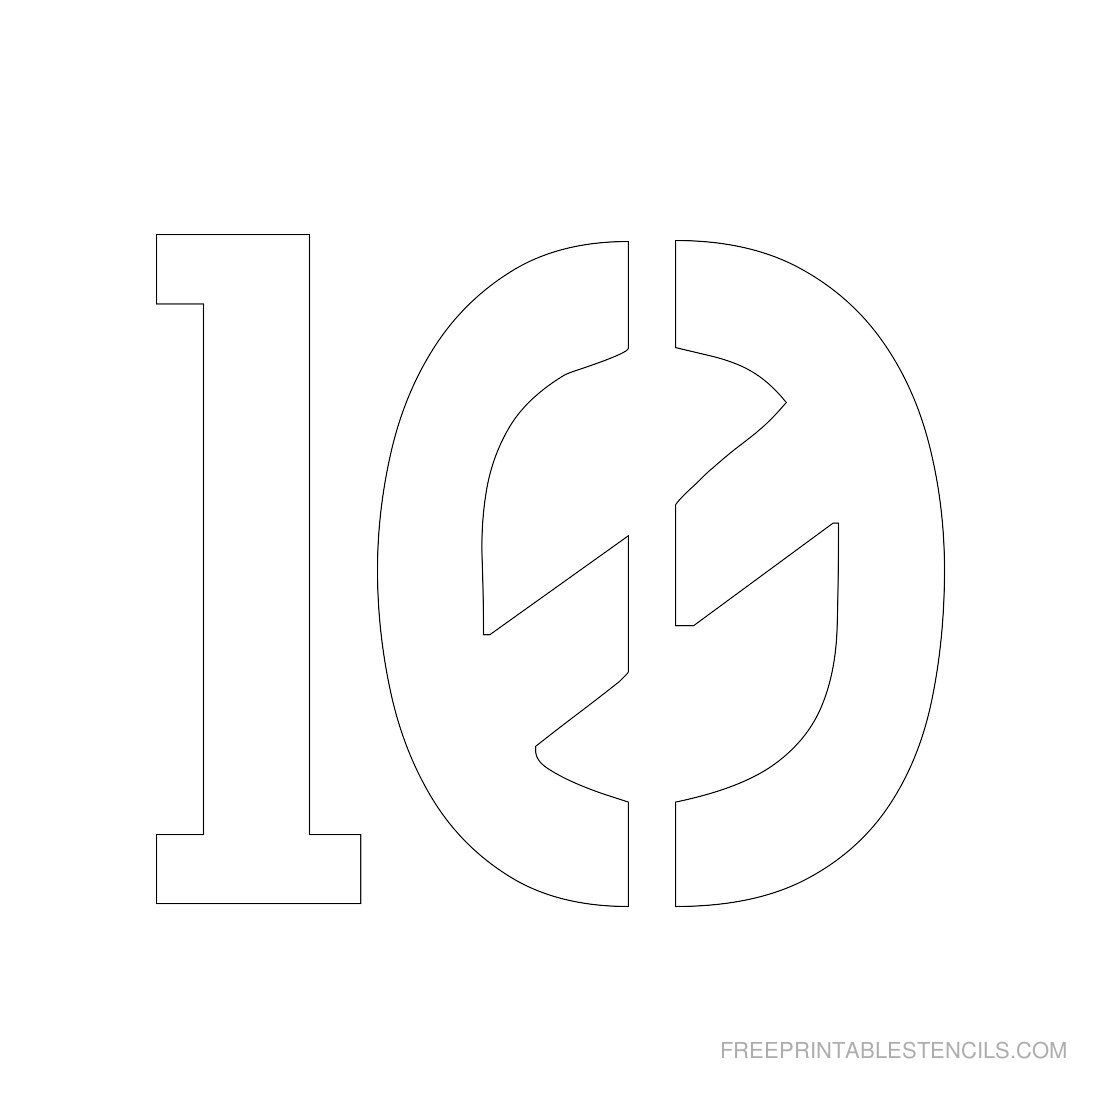 Printable 3 Inch Number Stencils 1 10 Free Com | Brody Boy | Number - Free Printable 3 Inch Number Stencils